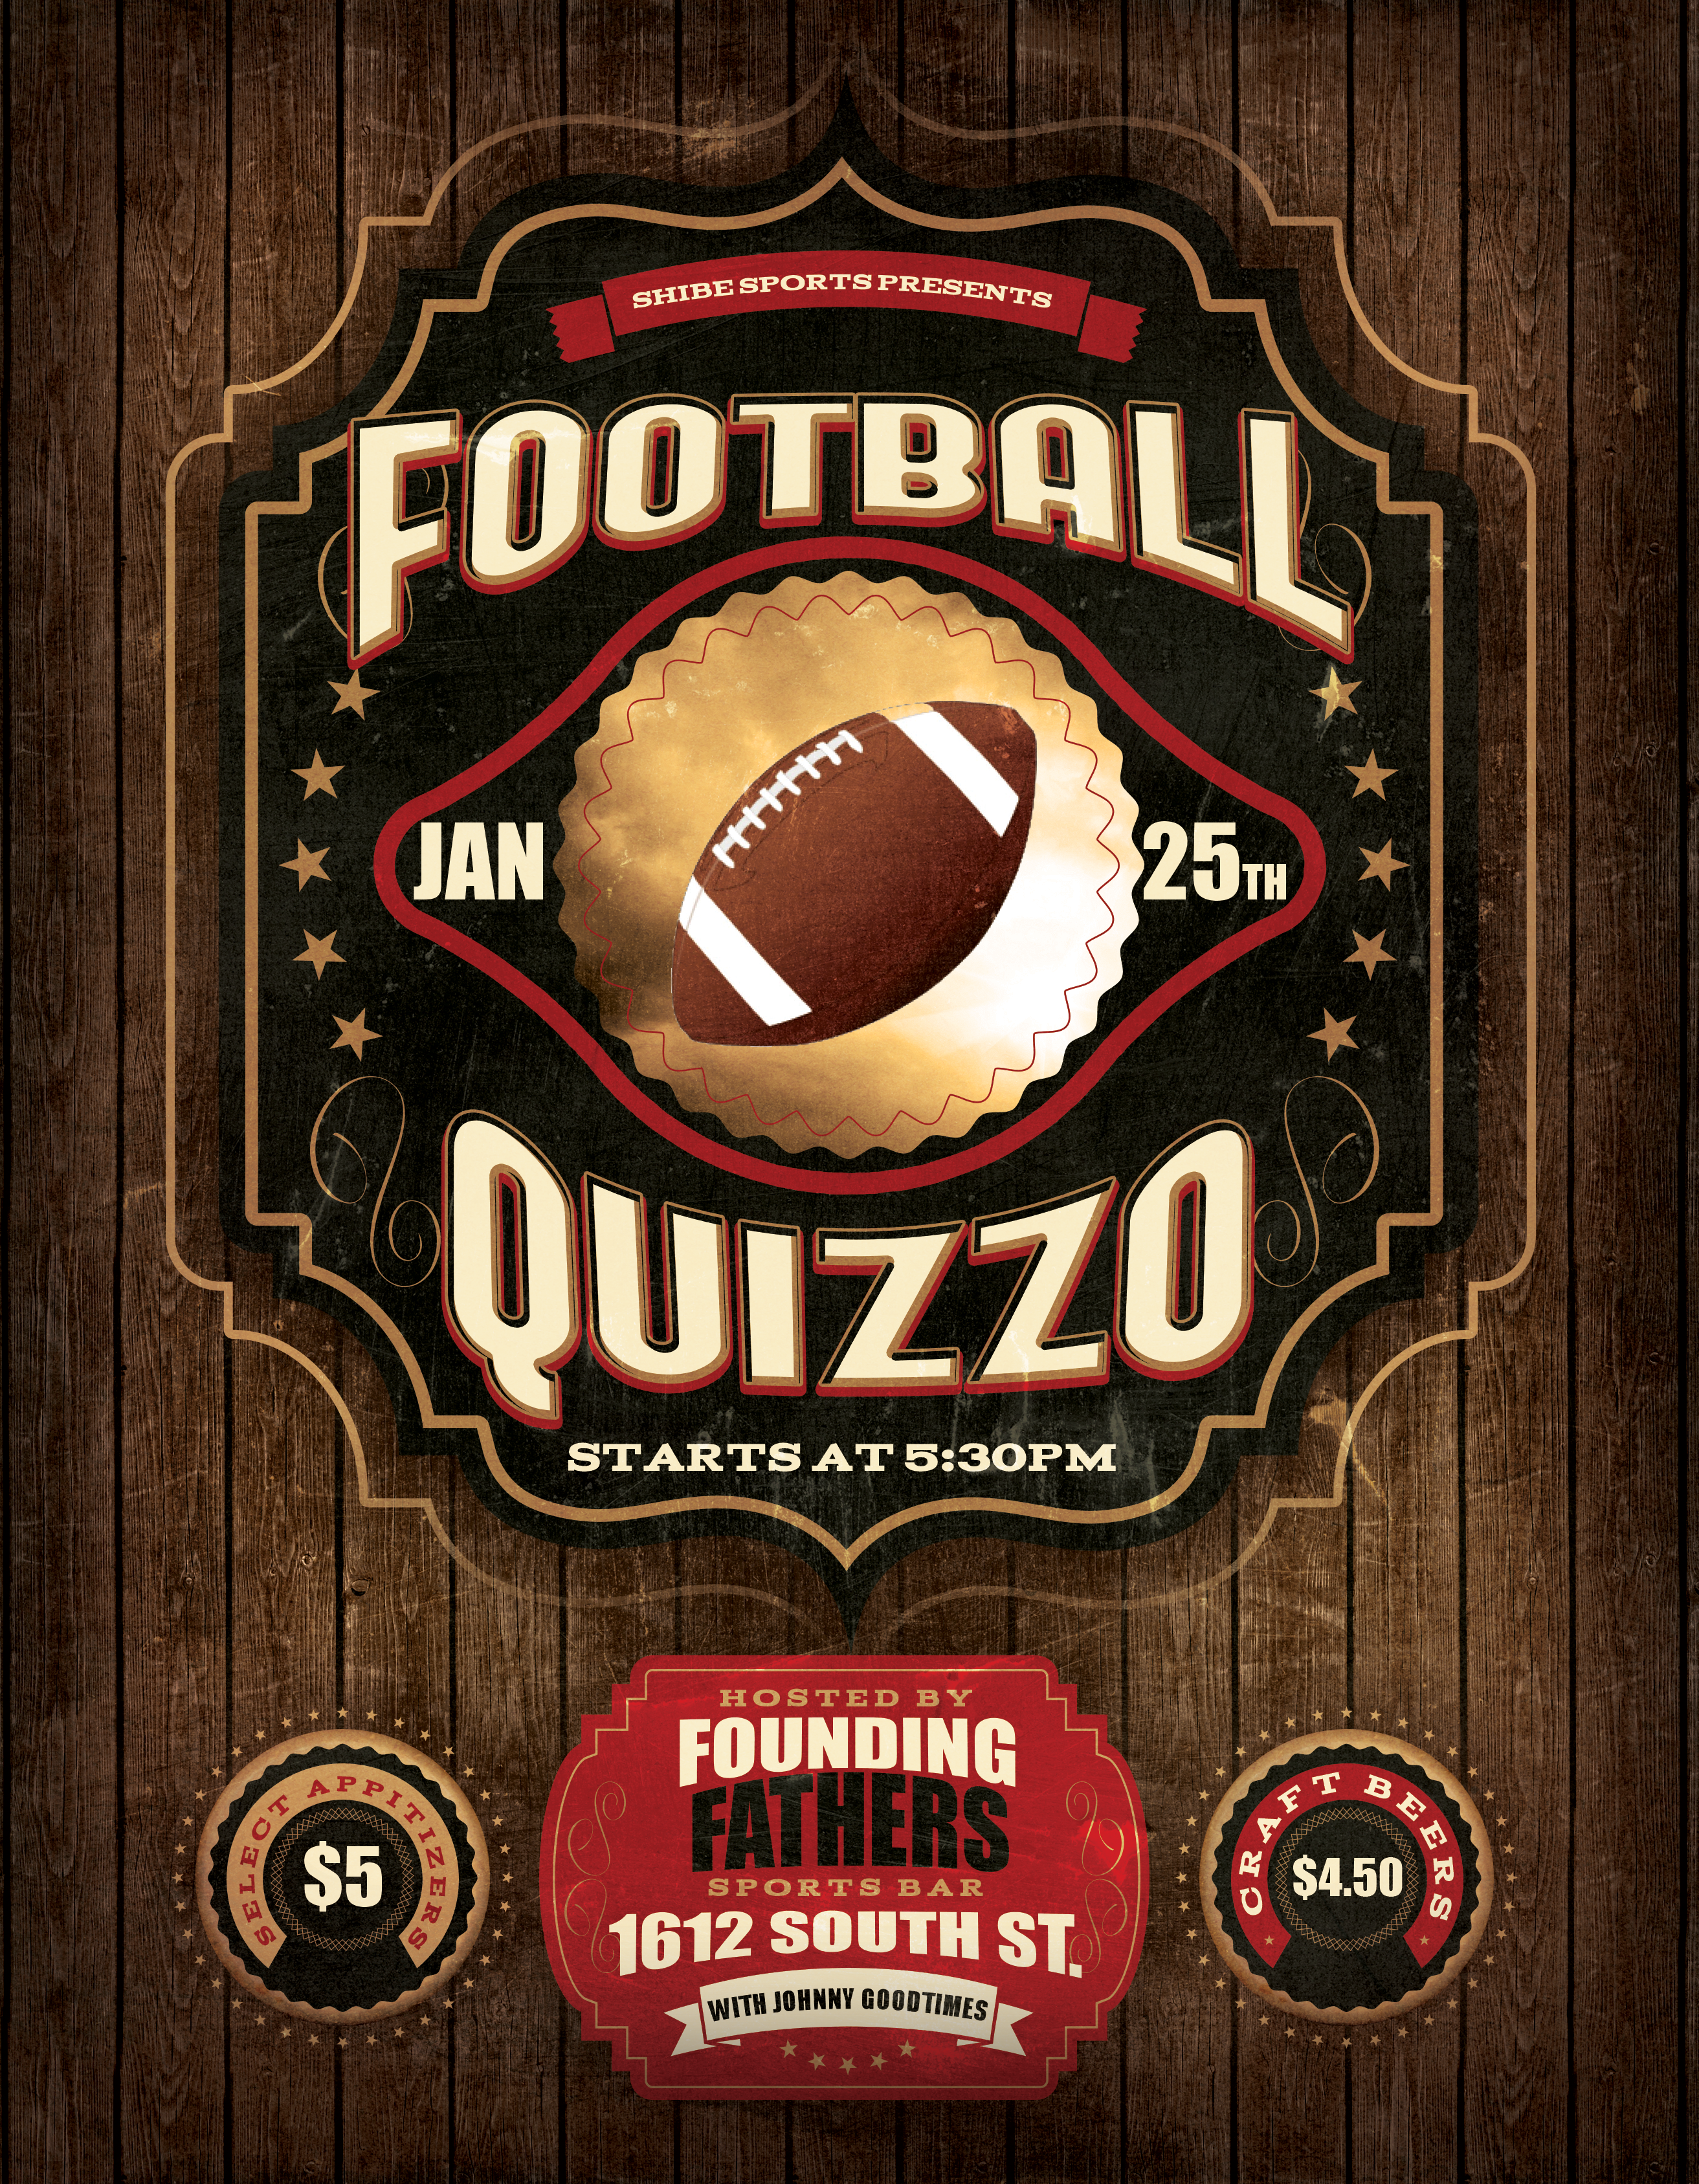 All Football Quizzo on Sunday!